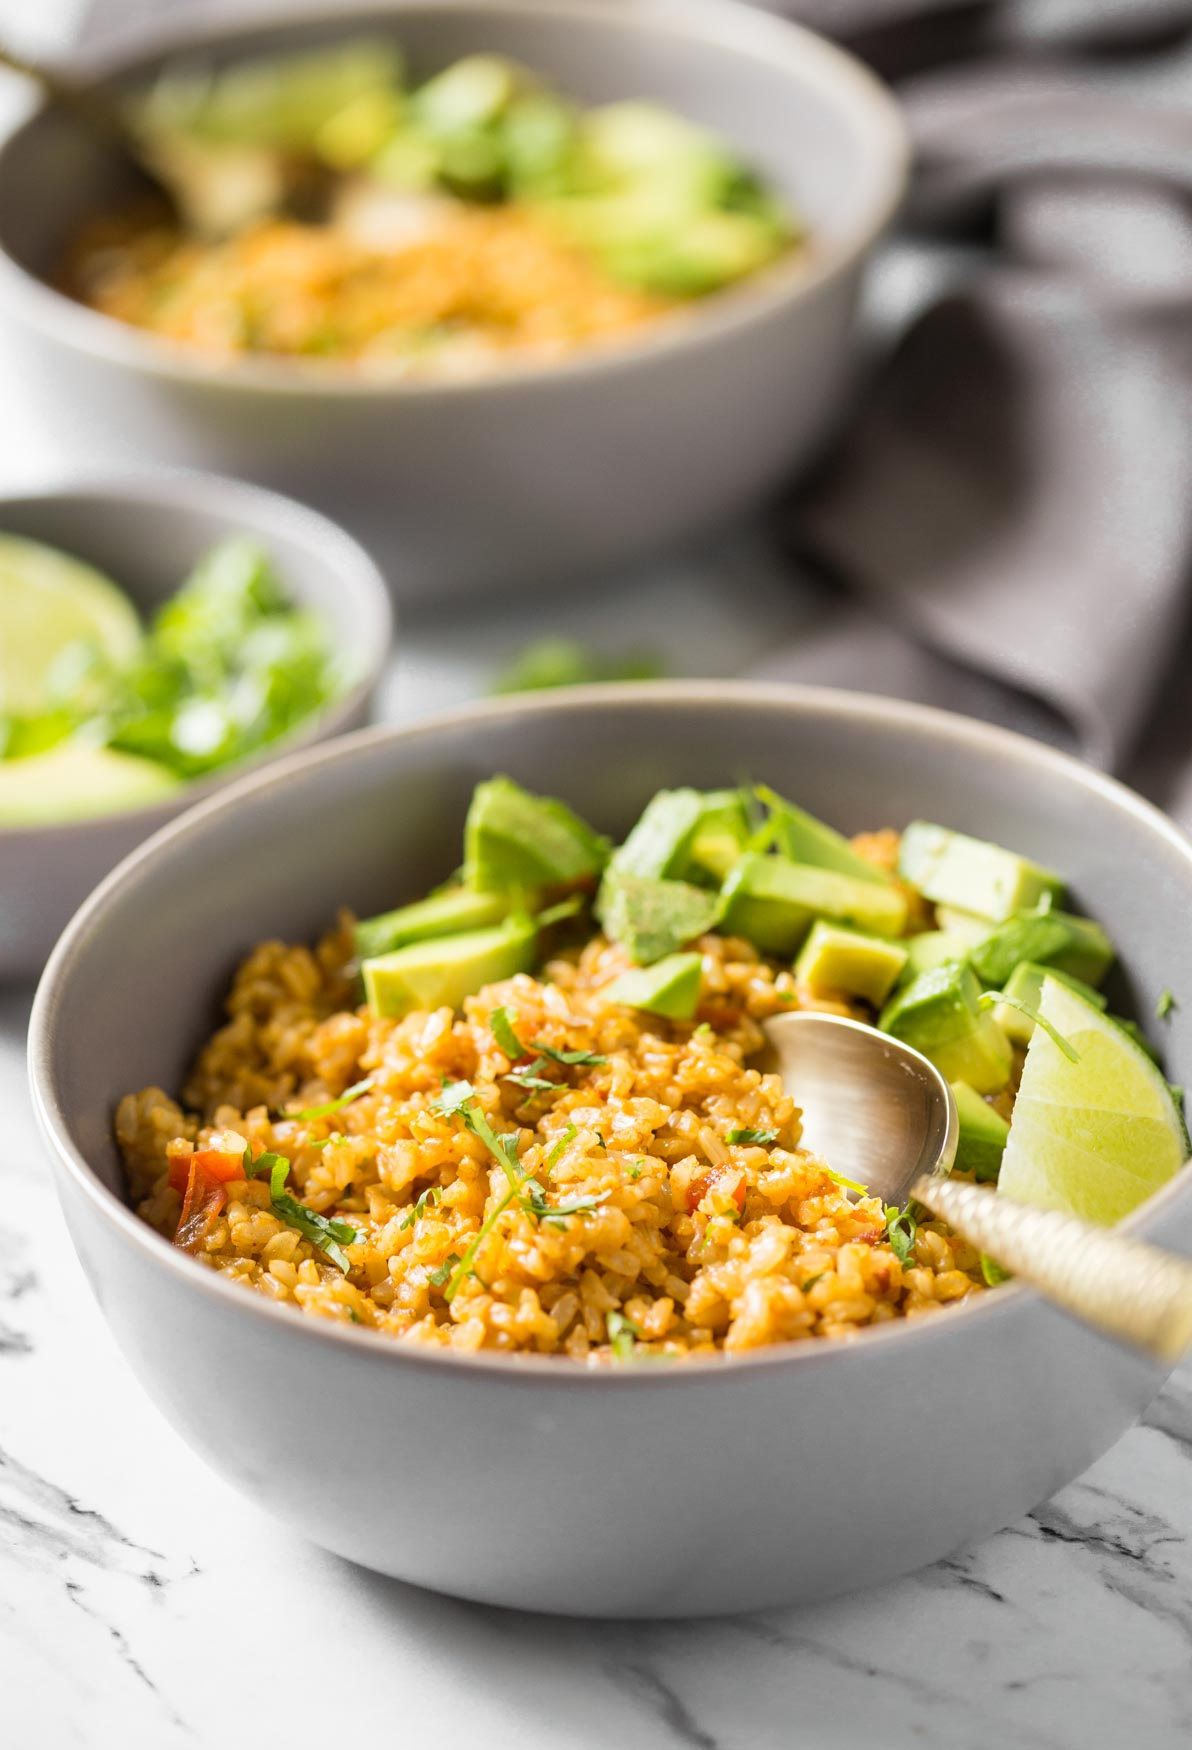 Mexican brown rice in a bowl with avocados, lime, and a spoon